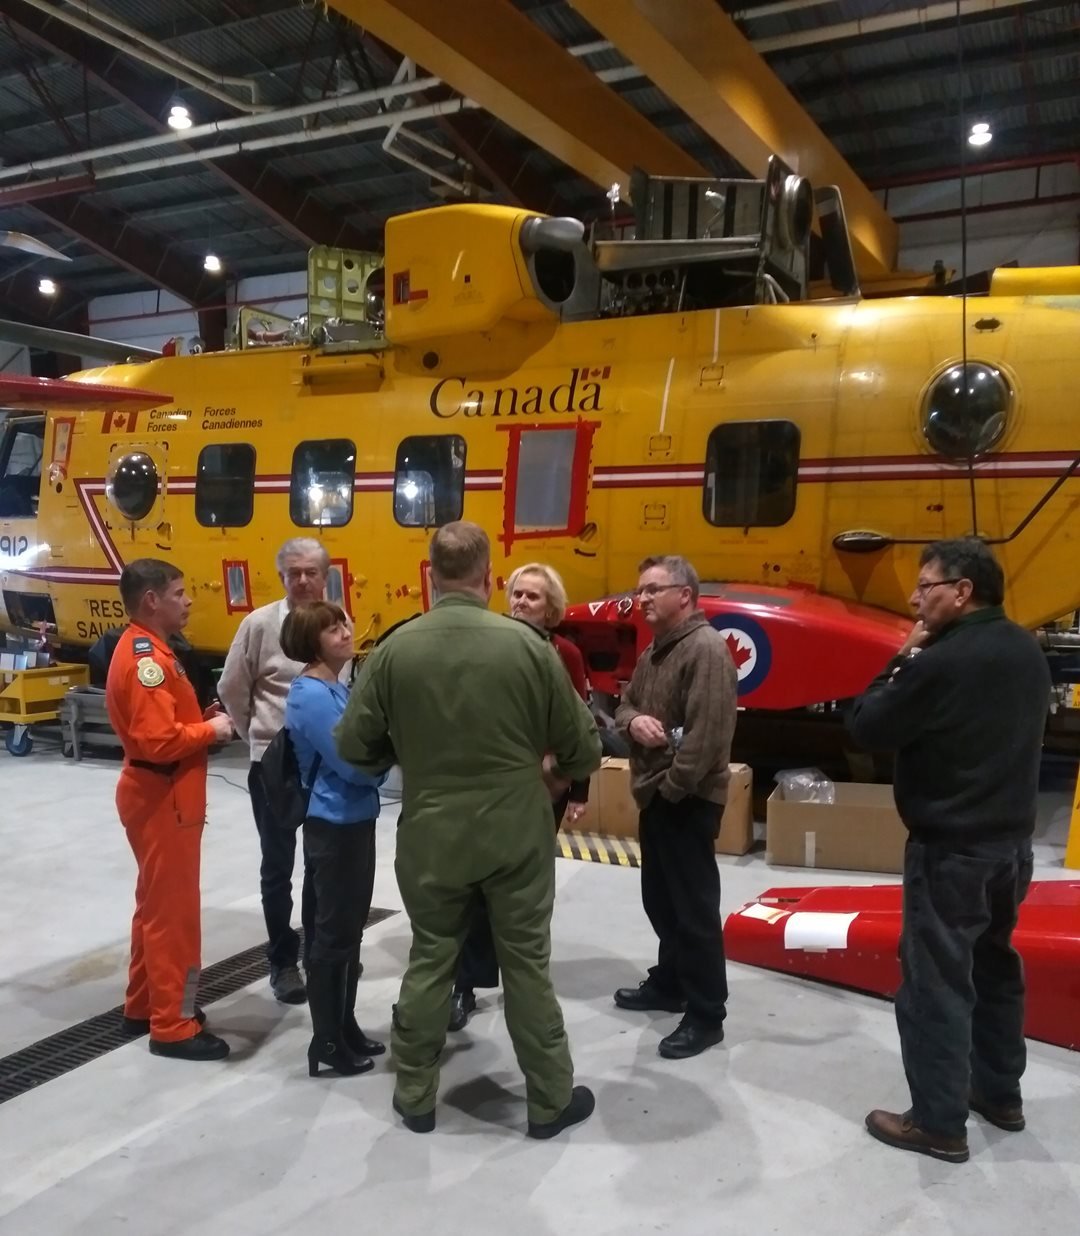 103 Squadron commanding officer Major Jim Pinhorn briefs senators on Cormorant search and rescue helicopters at Canadian Forces Base Gander.